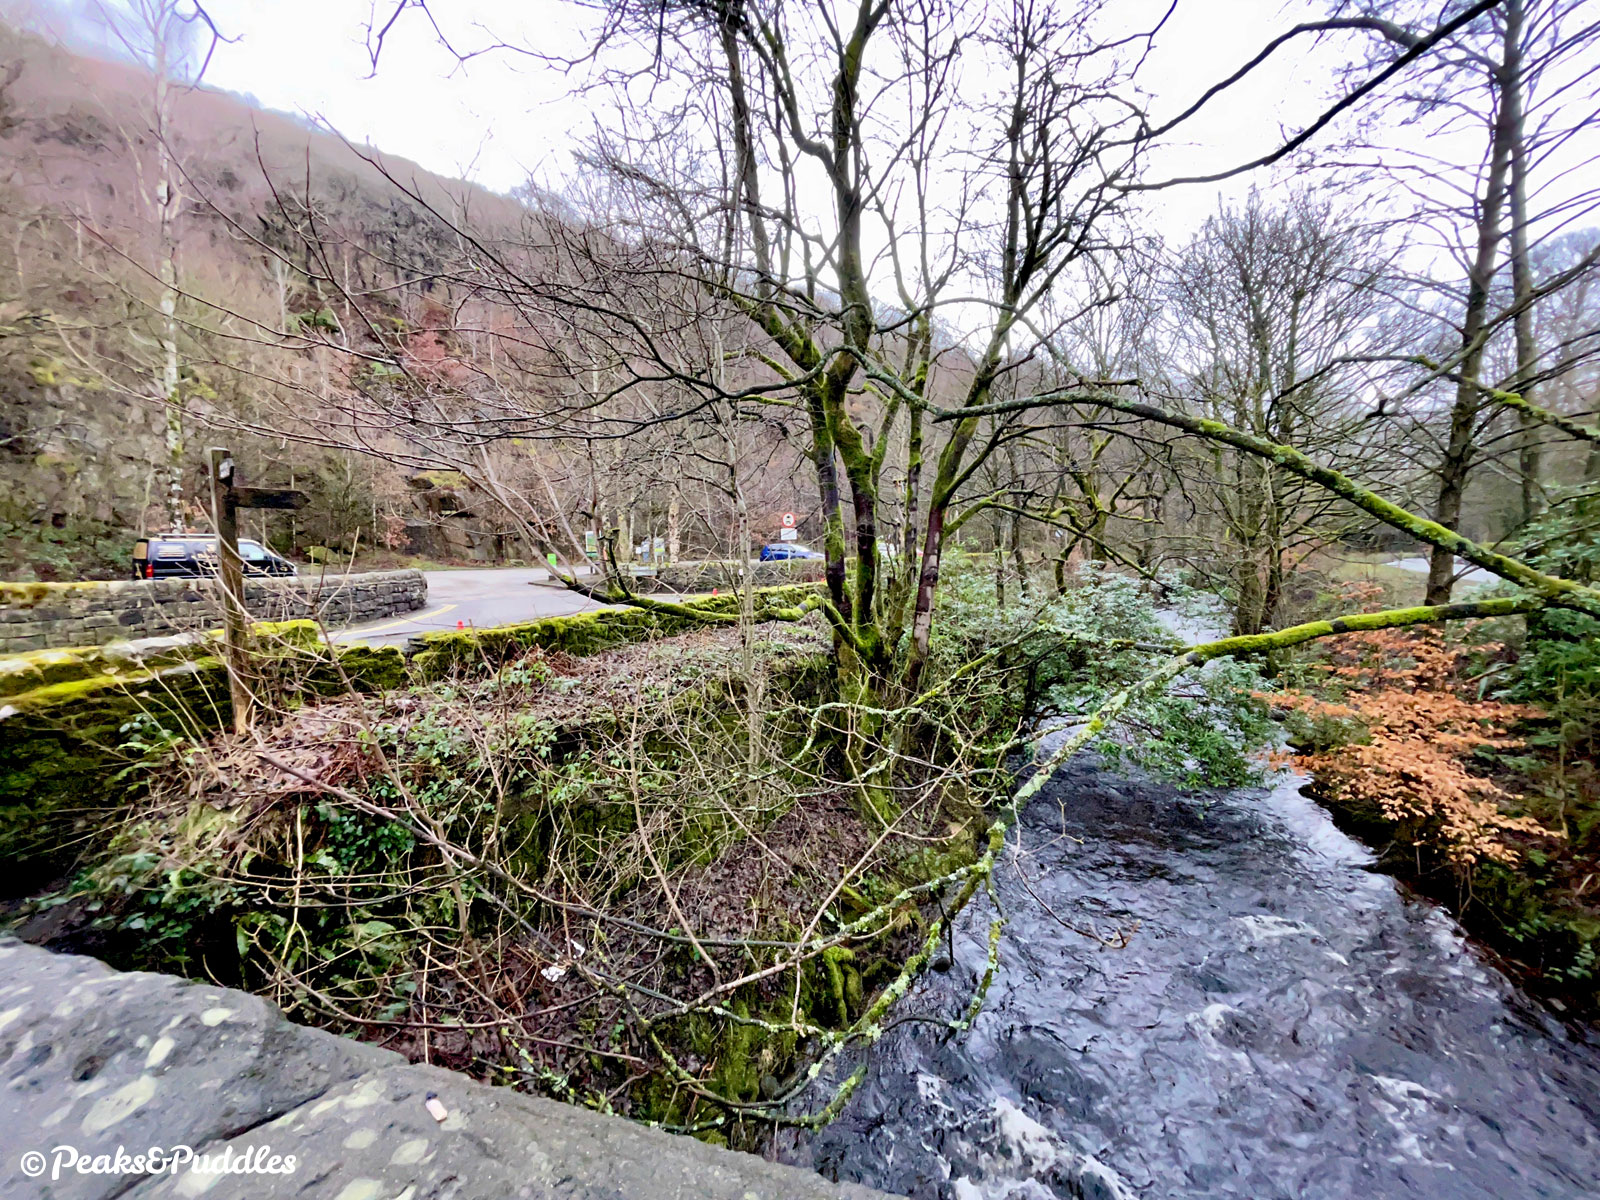 Looking to Bowden Bridge Quarry from the first bridge over the raging River Sett on a dull winter day.